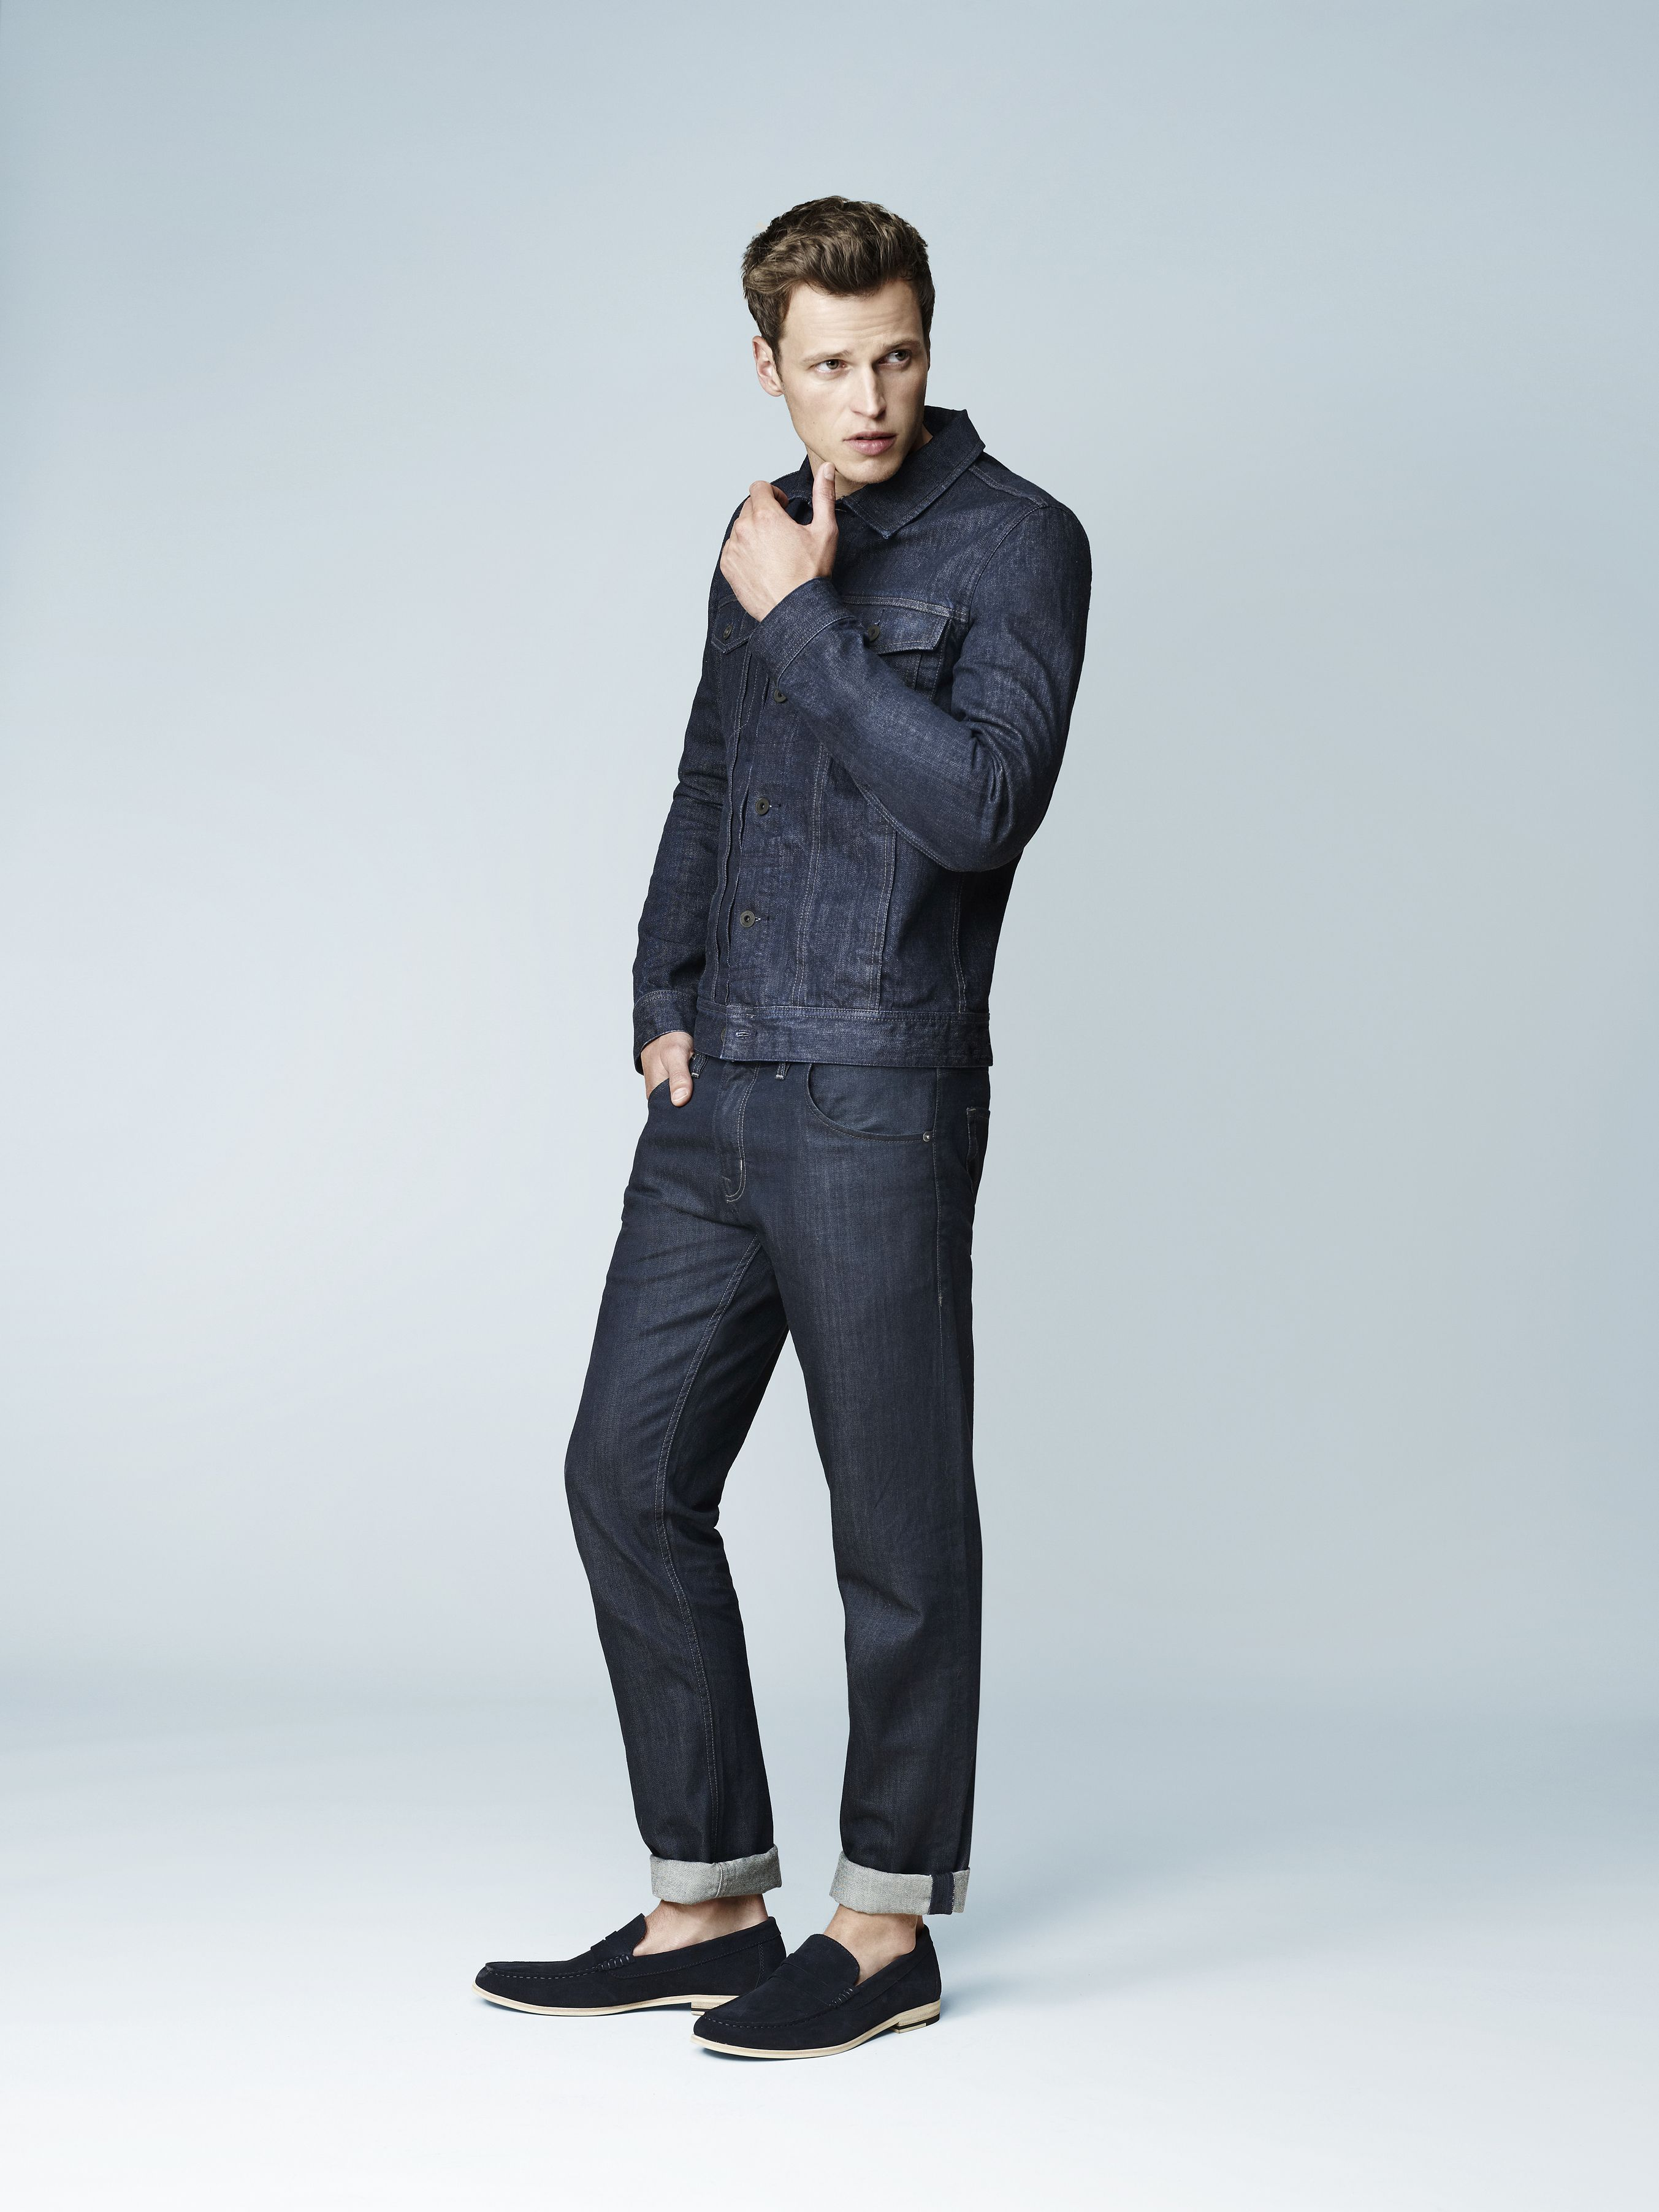 Love a man in a tux - Canadian tuxedo that is. Country Road Man Spring  Summer 2013. 97a76f6d80c